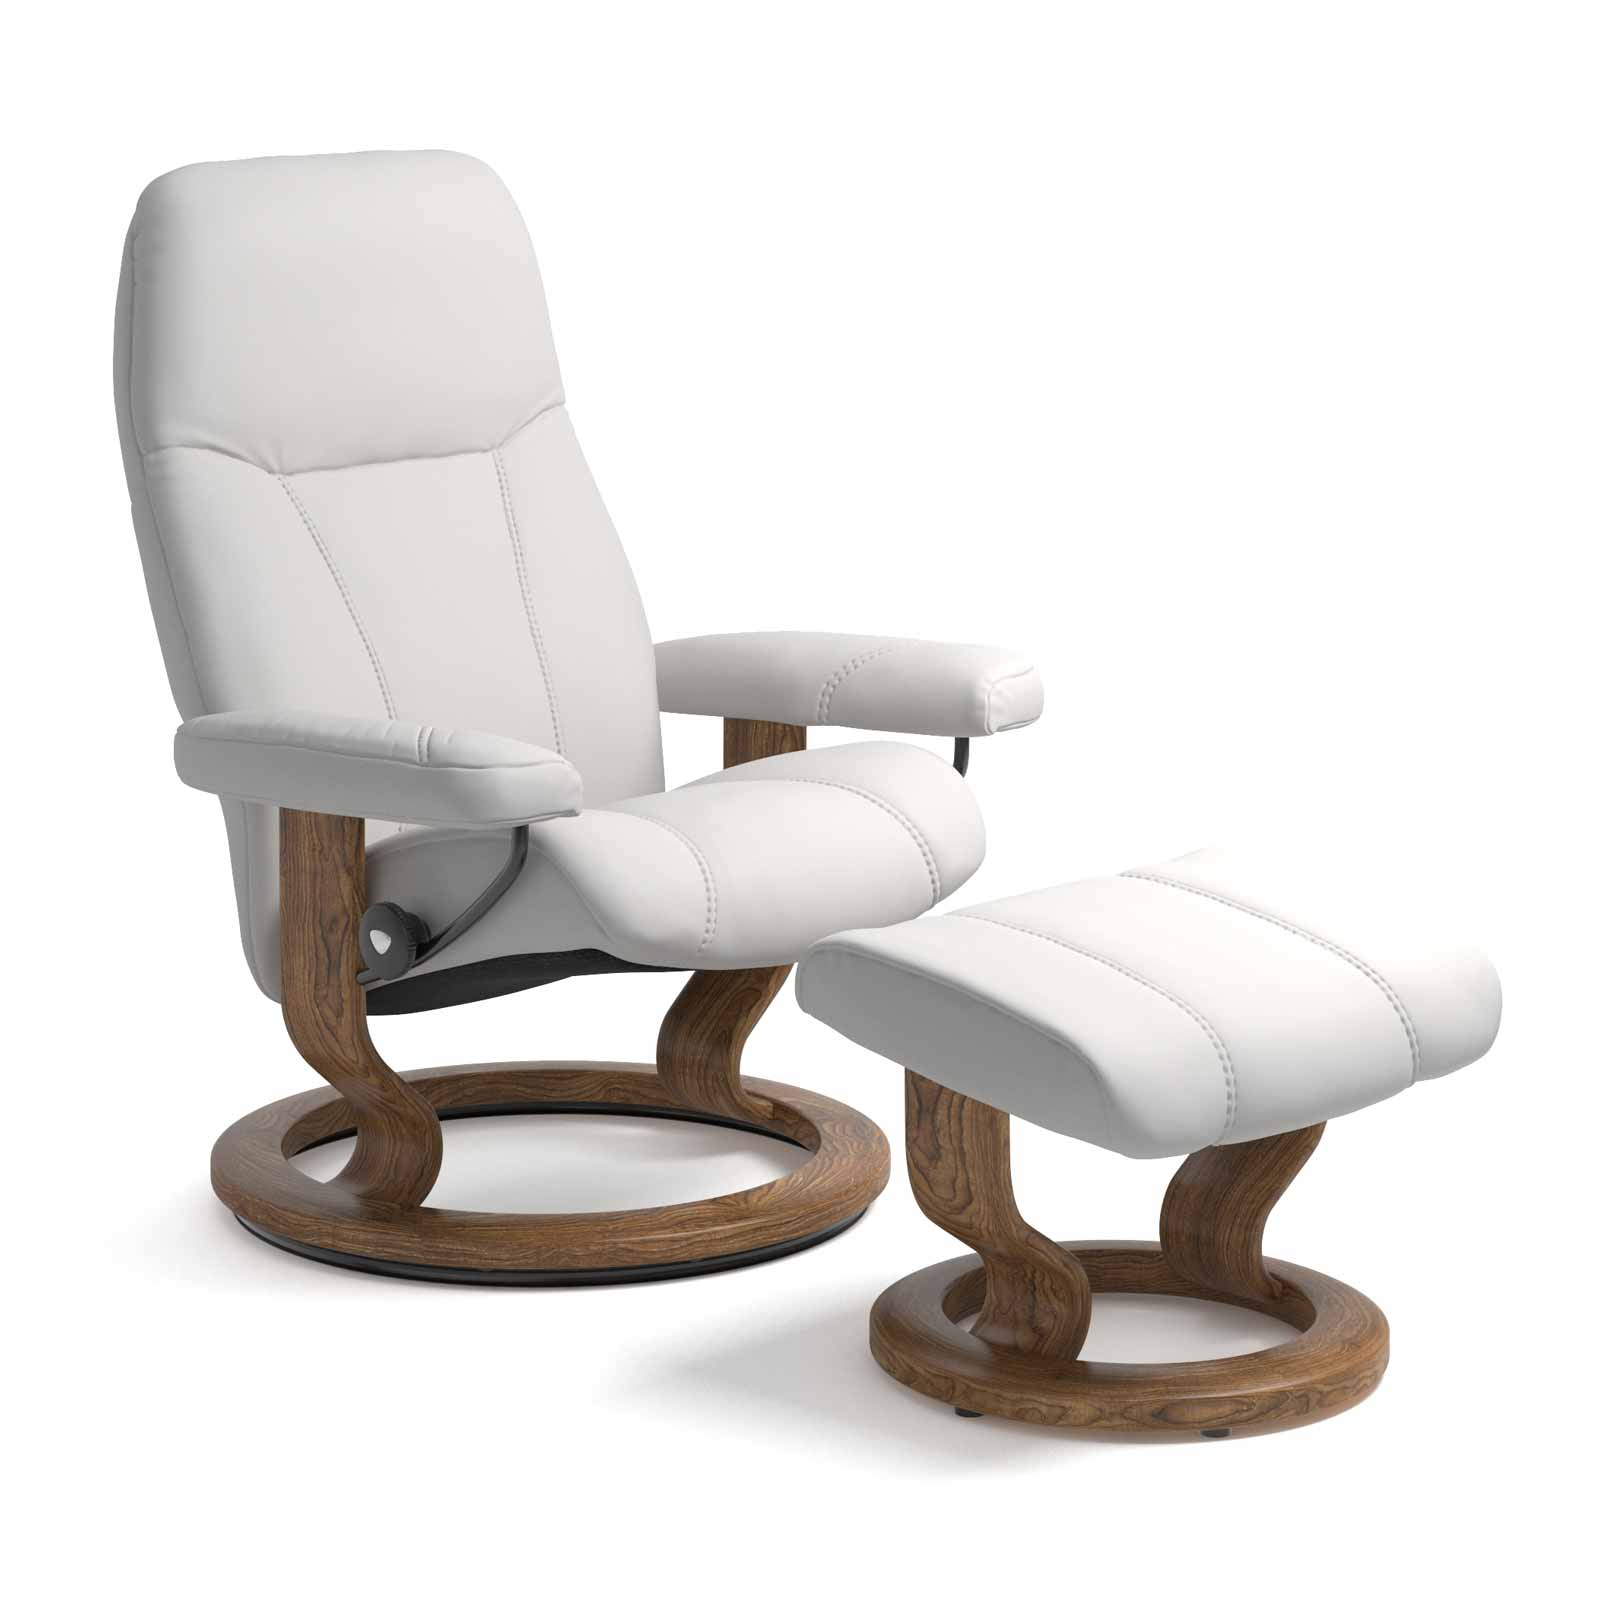 Stressless Sessel Berlin Stressless Consul Classic Batick Snow Mit Hocker Stressless